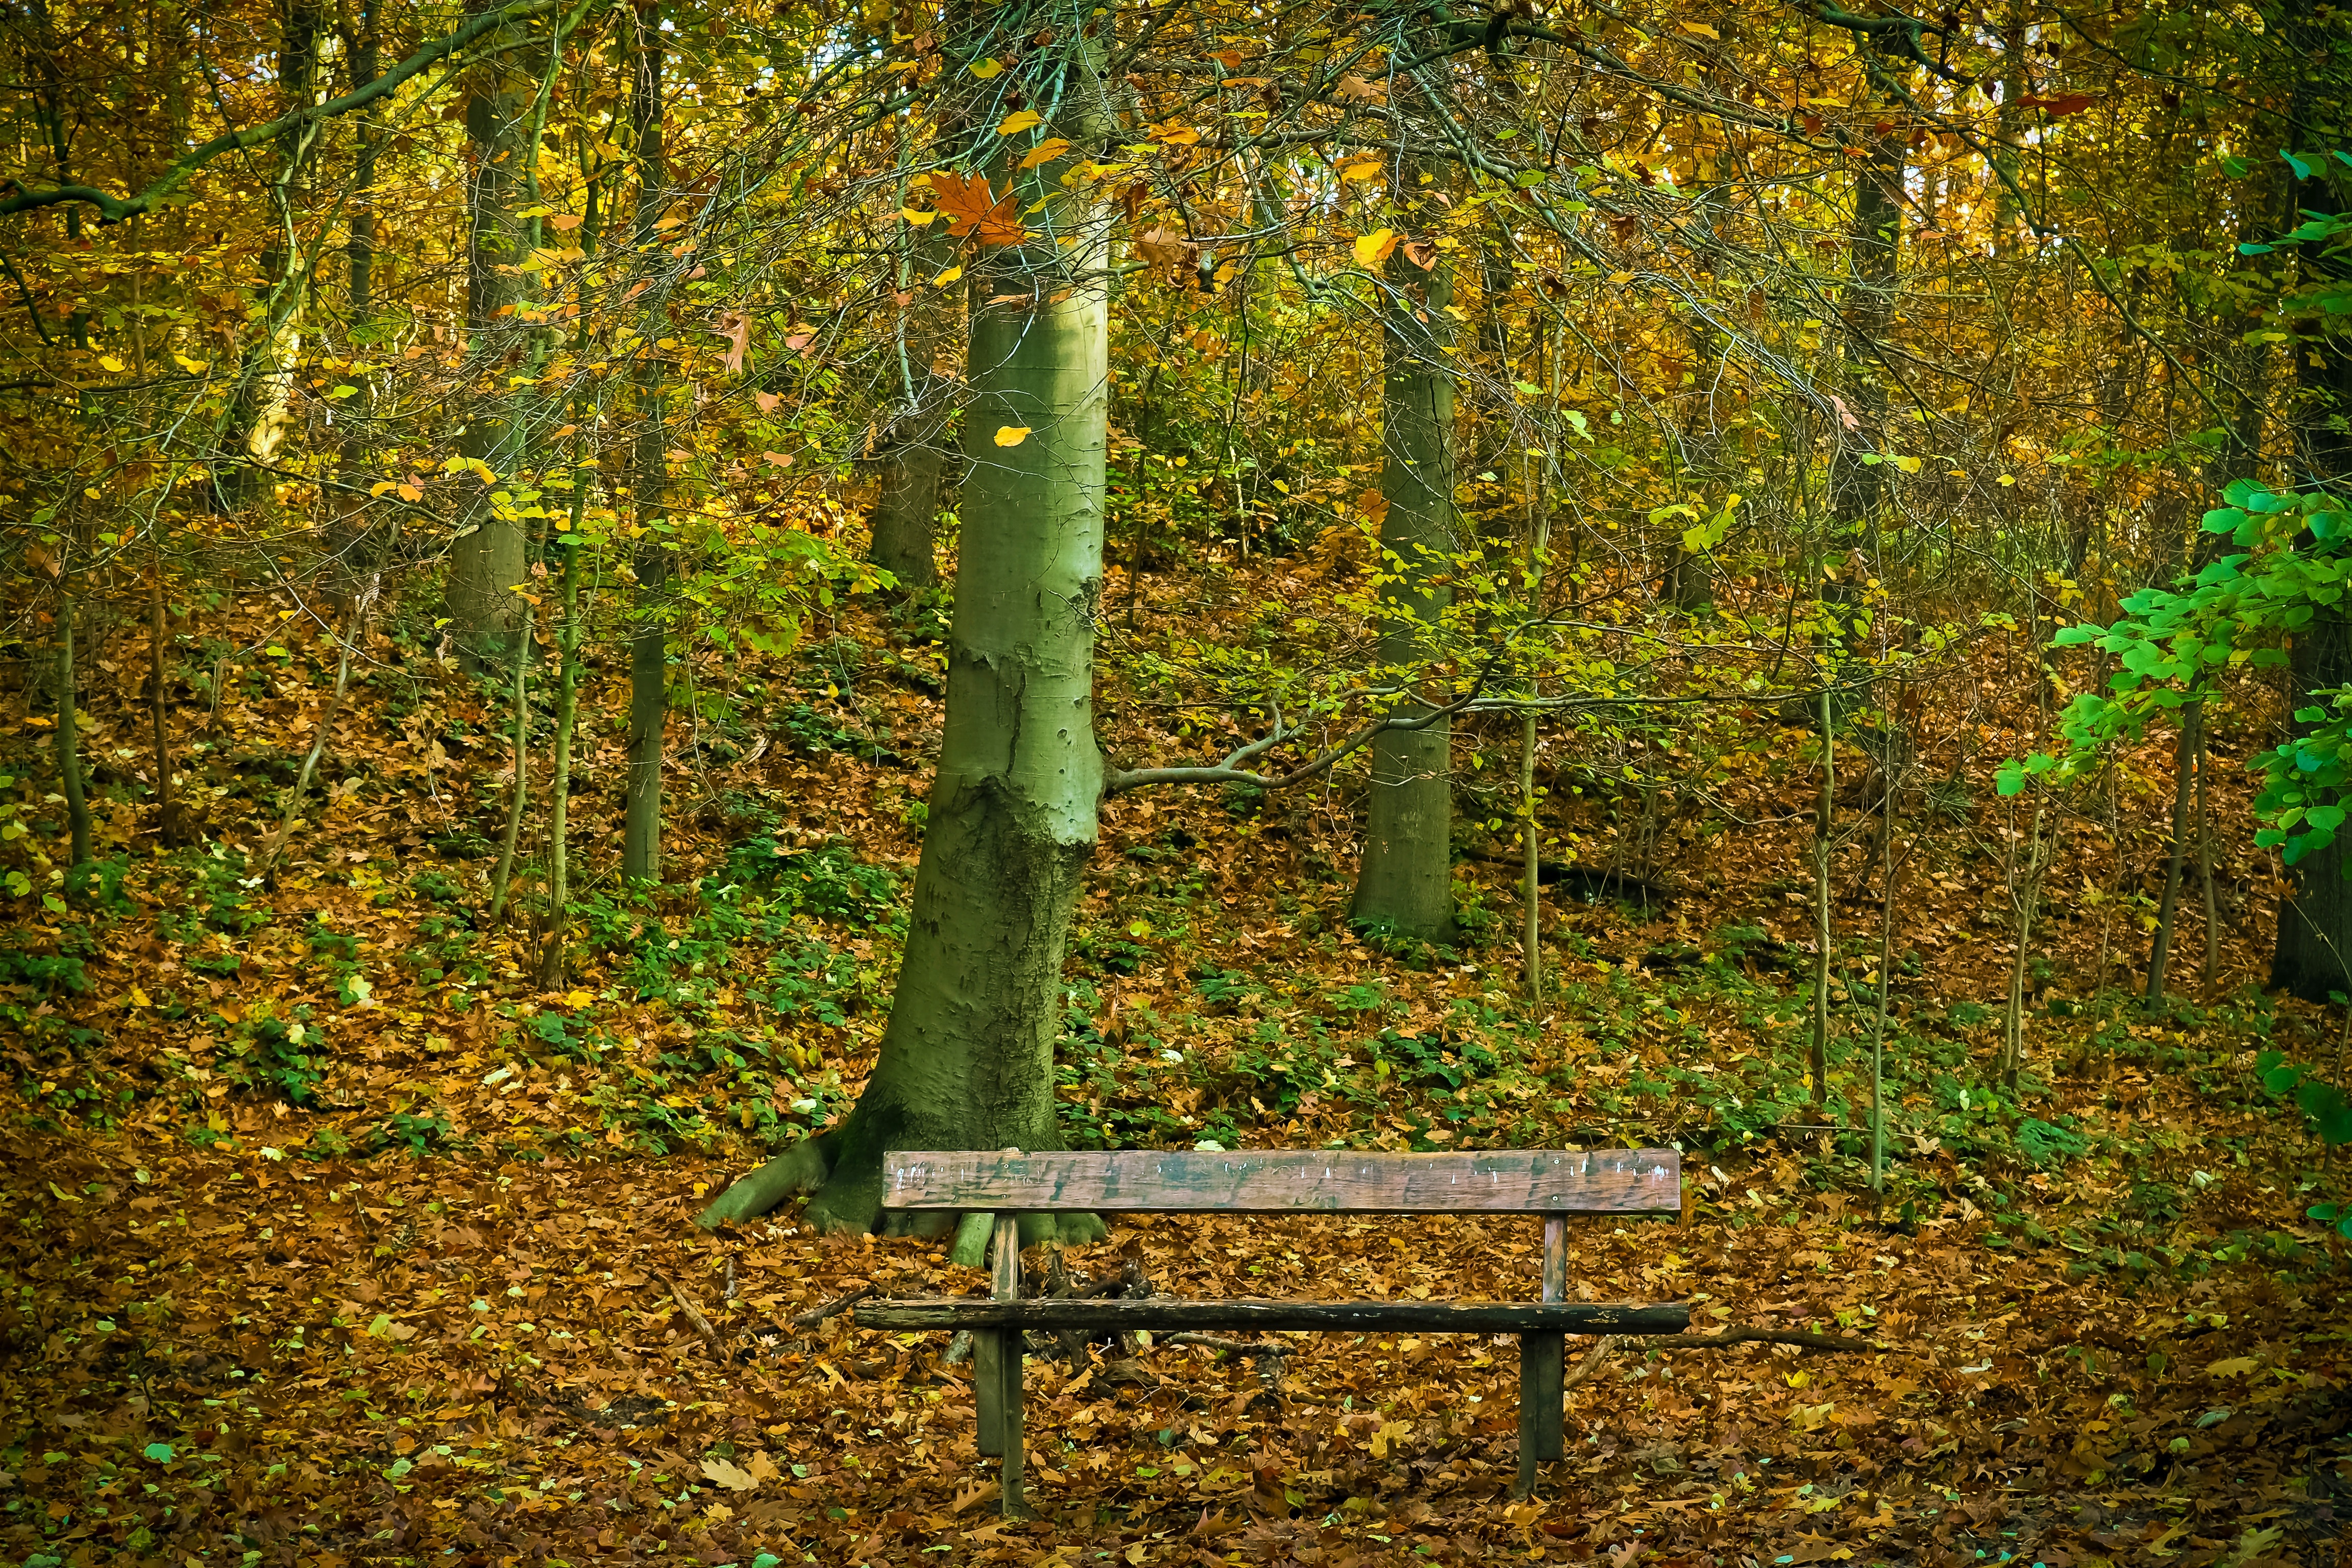 Free photo: Bench in Park during Autumn - relax, rest, plants - CC0 ...